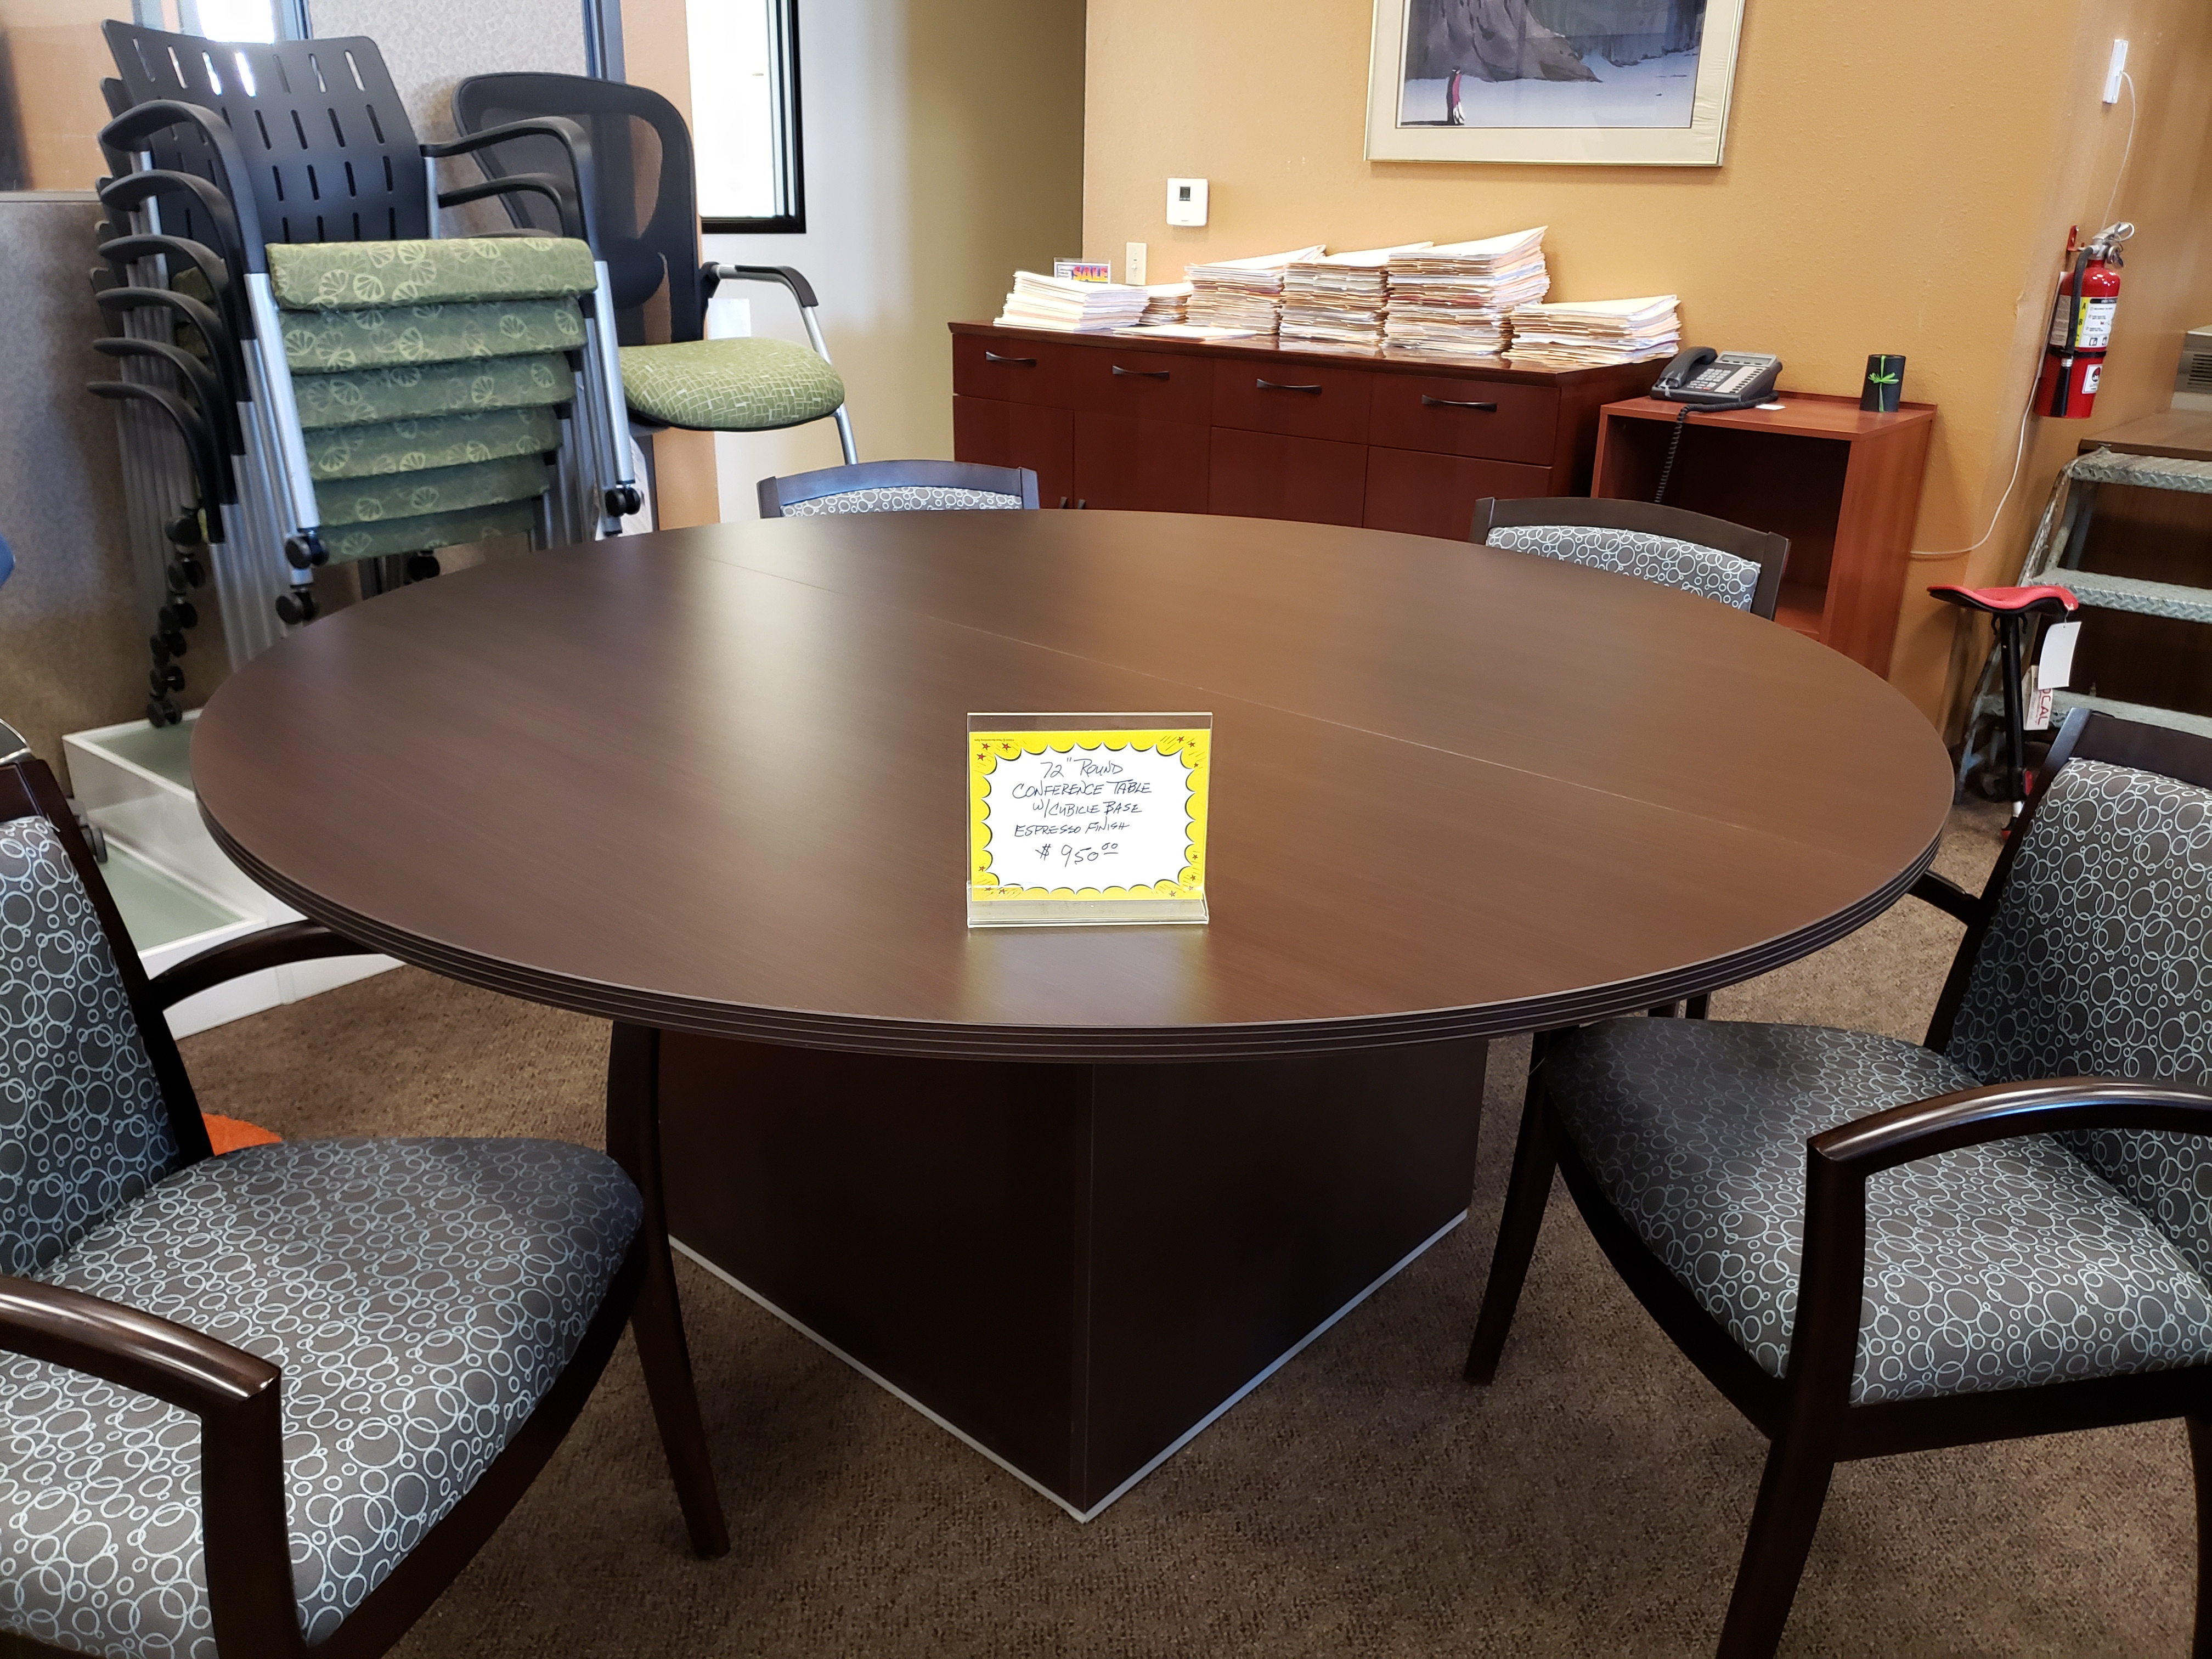 4 FOOT ROUND ESPRESSO CONFERENCE TABLE